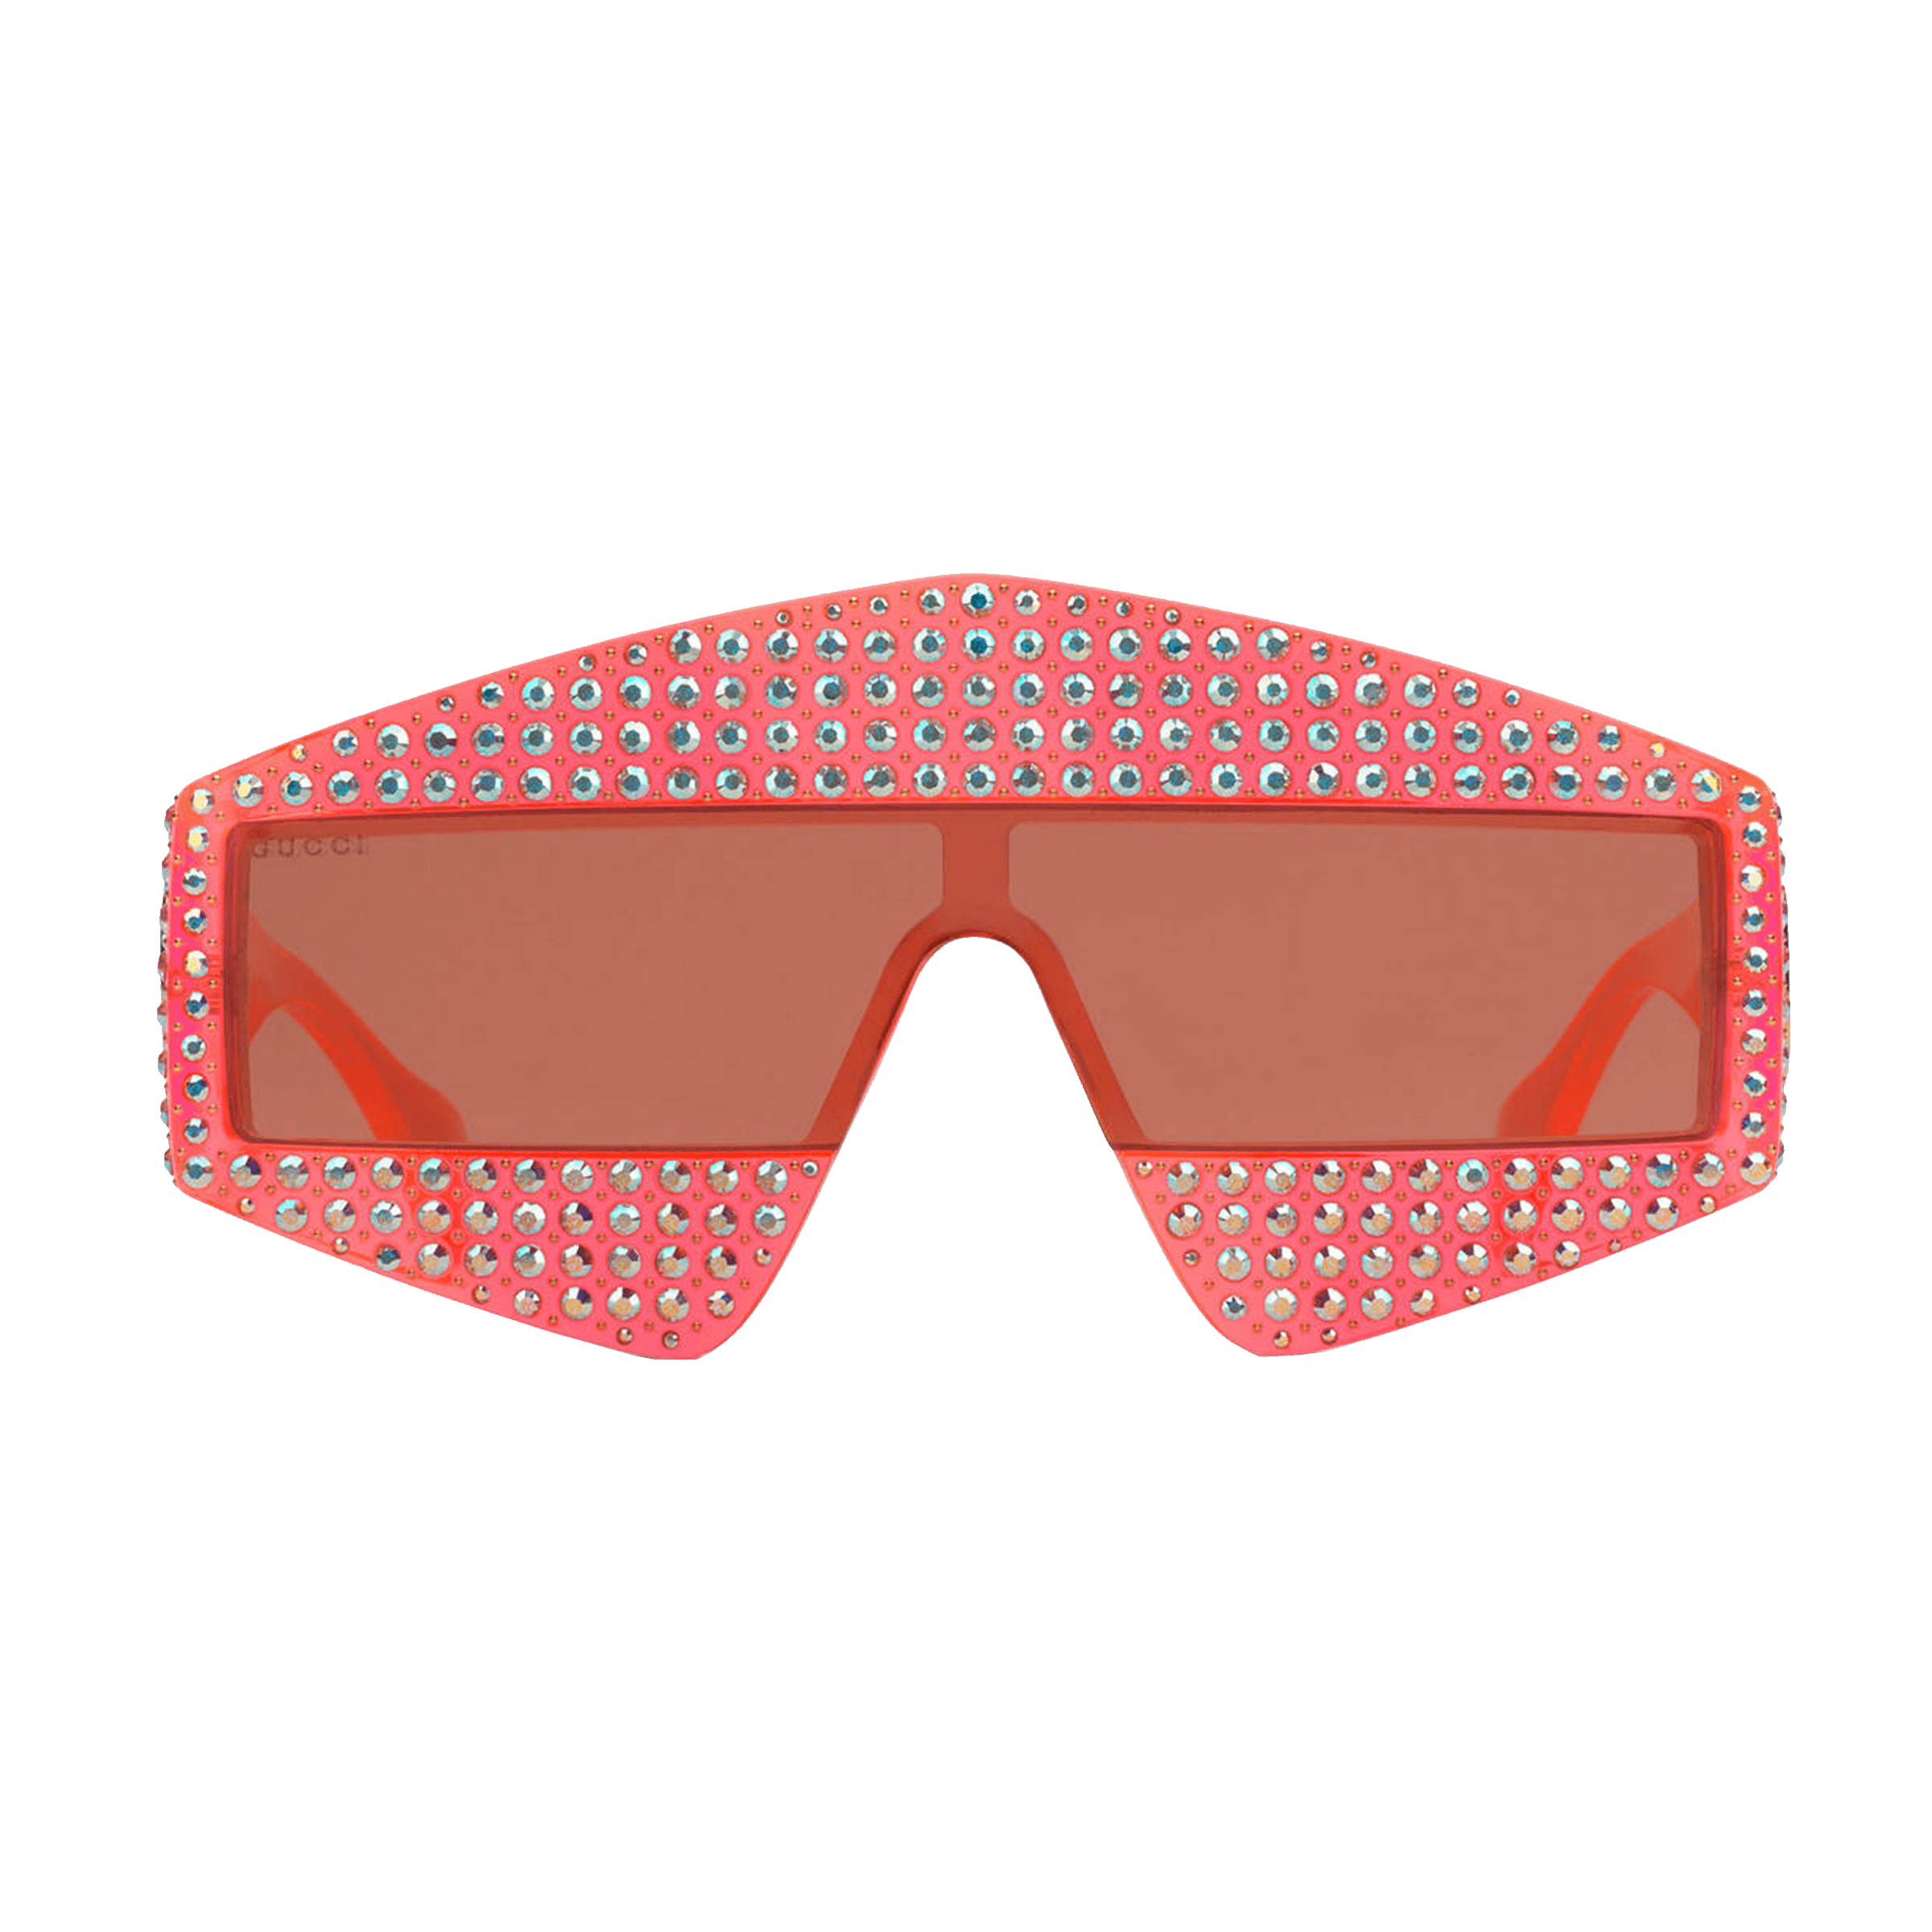 If Sunglasses Had Superpowers, They\'d Look Like This